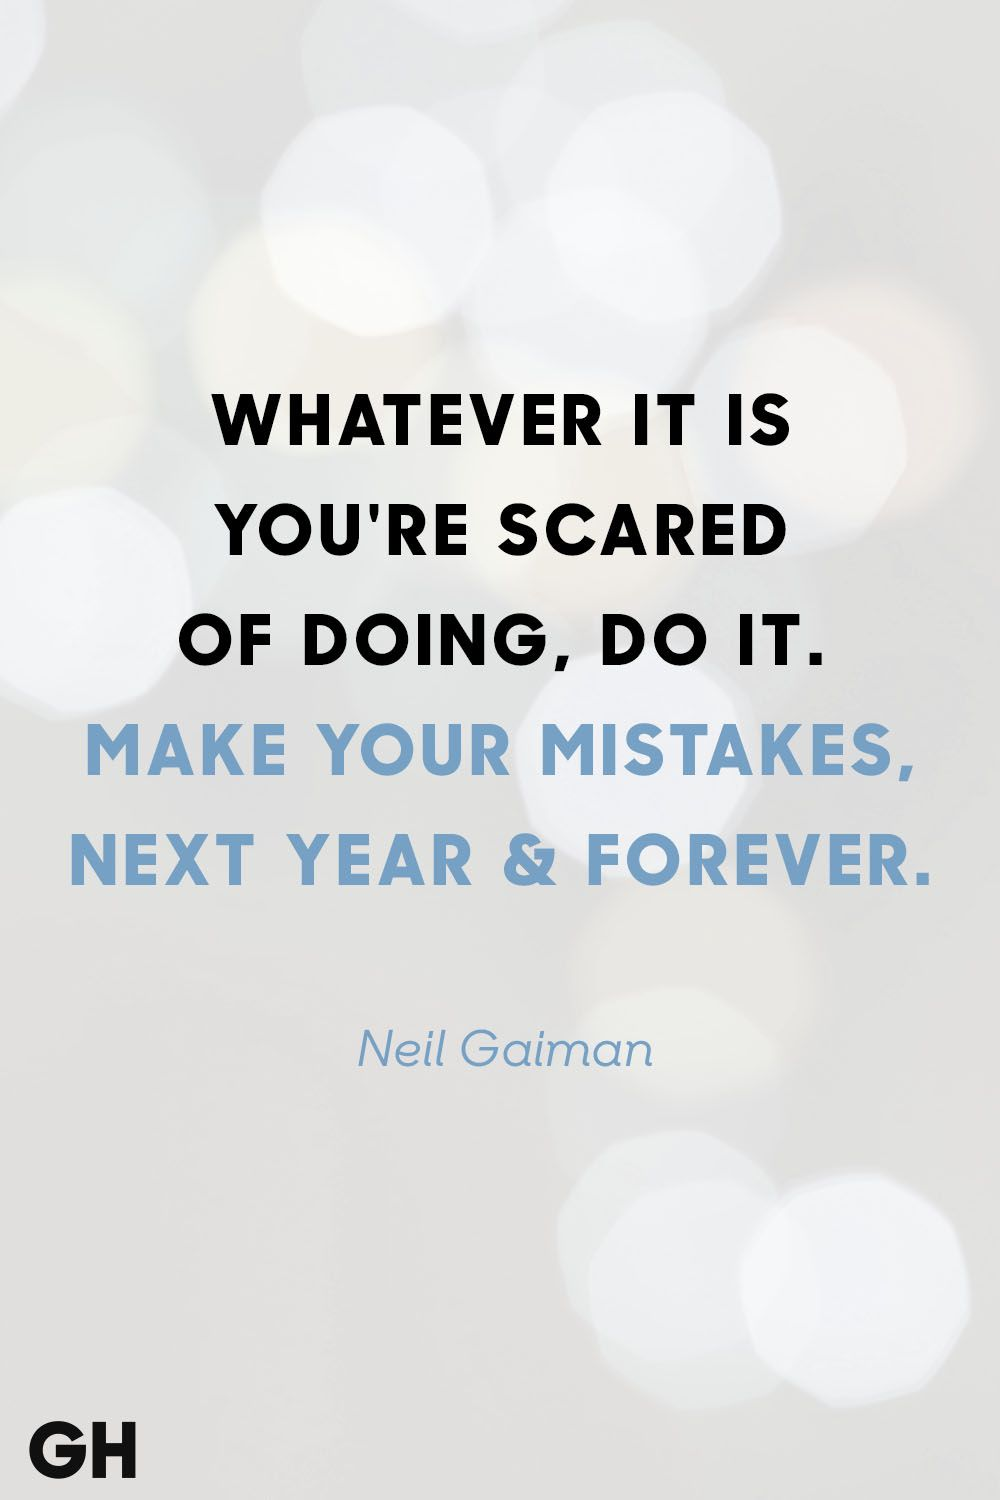 30 New Year\'s Quotes That Will Inspire a Fresh Start | Neil gaiman ...